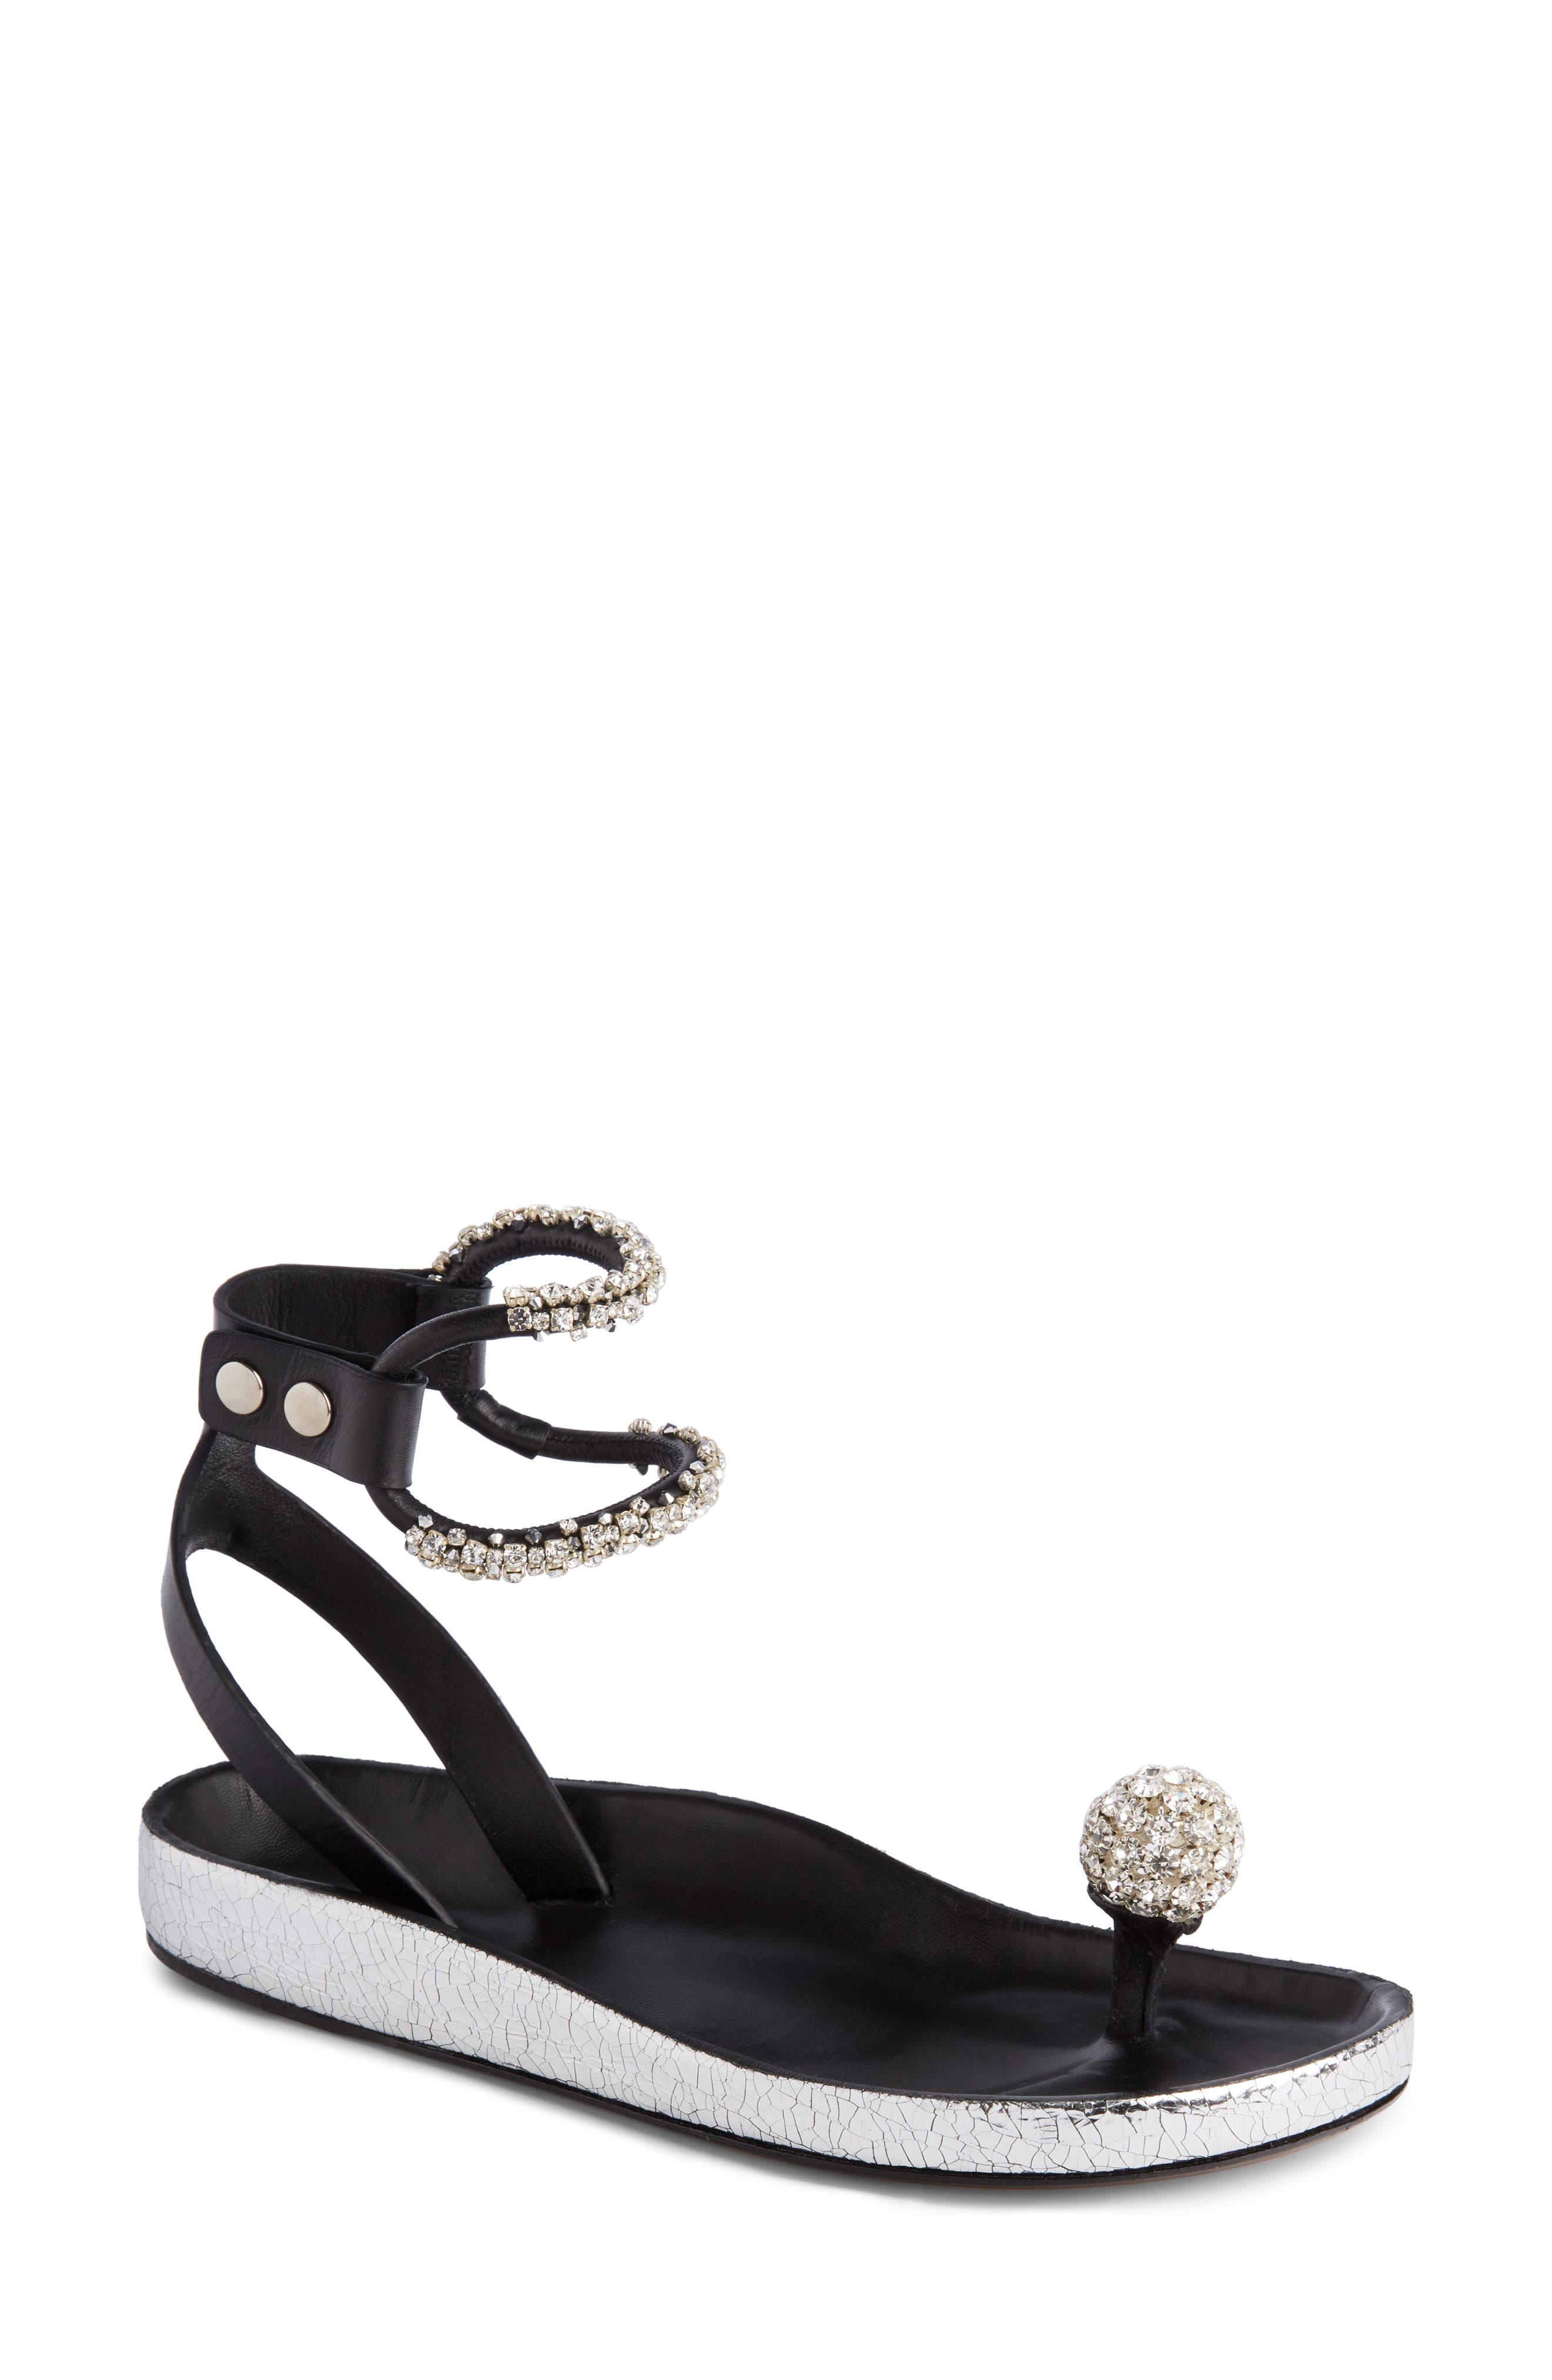 Ecly Crystal Ball Sandal,                             Main thumbnail 1, color,